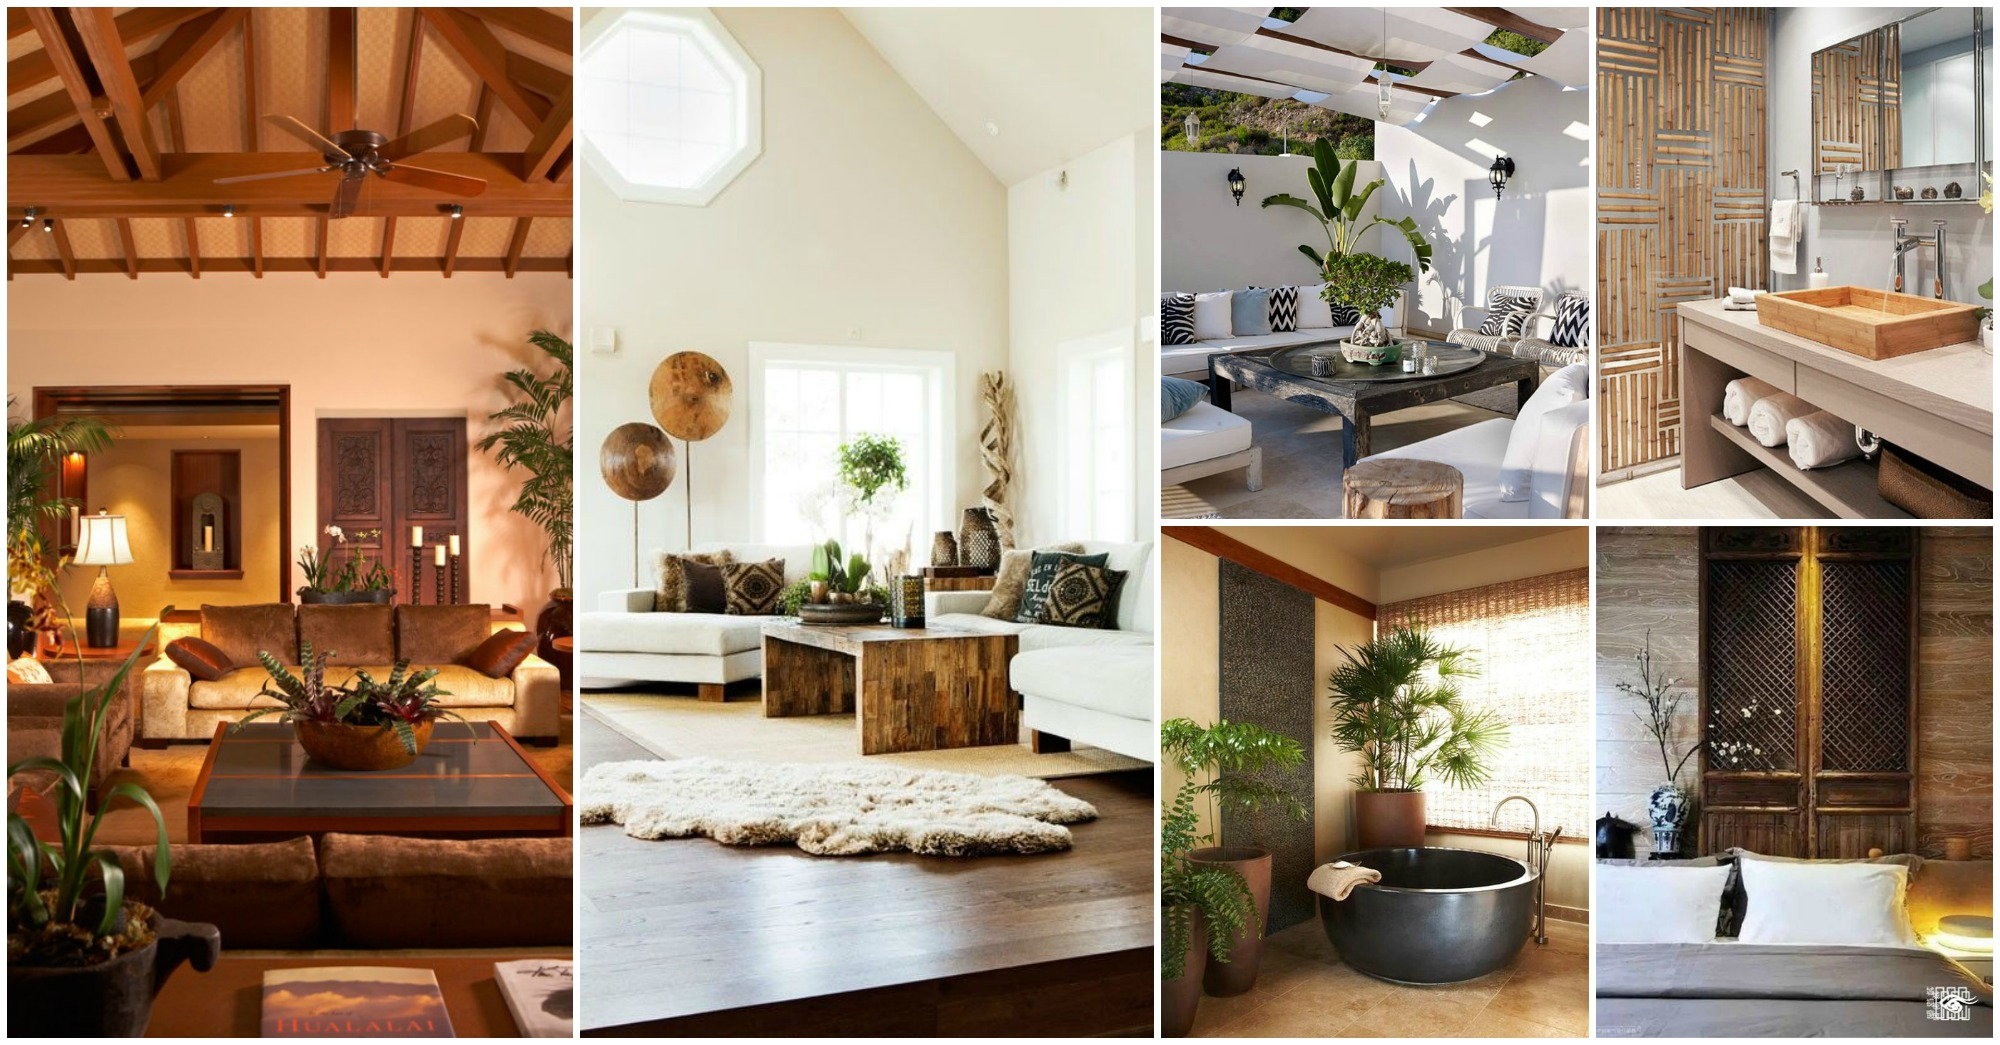 12 impressive modern asian home decor ideas for Asian home decor